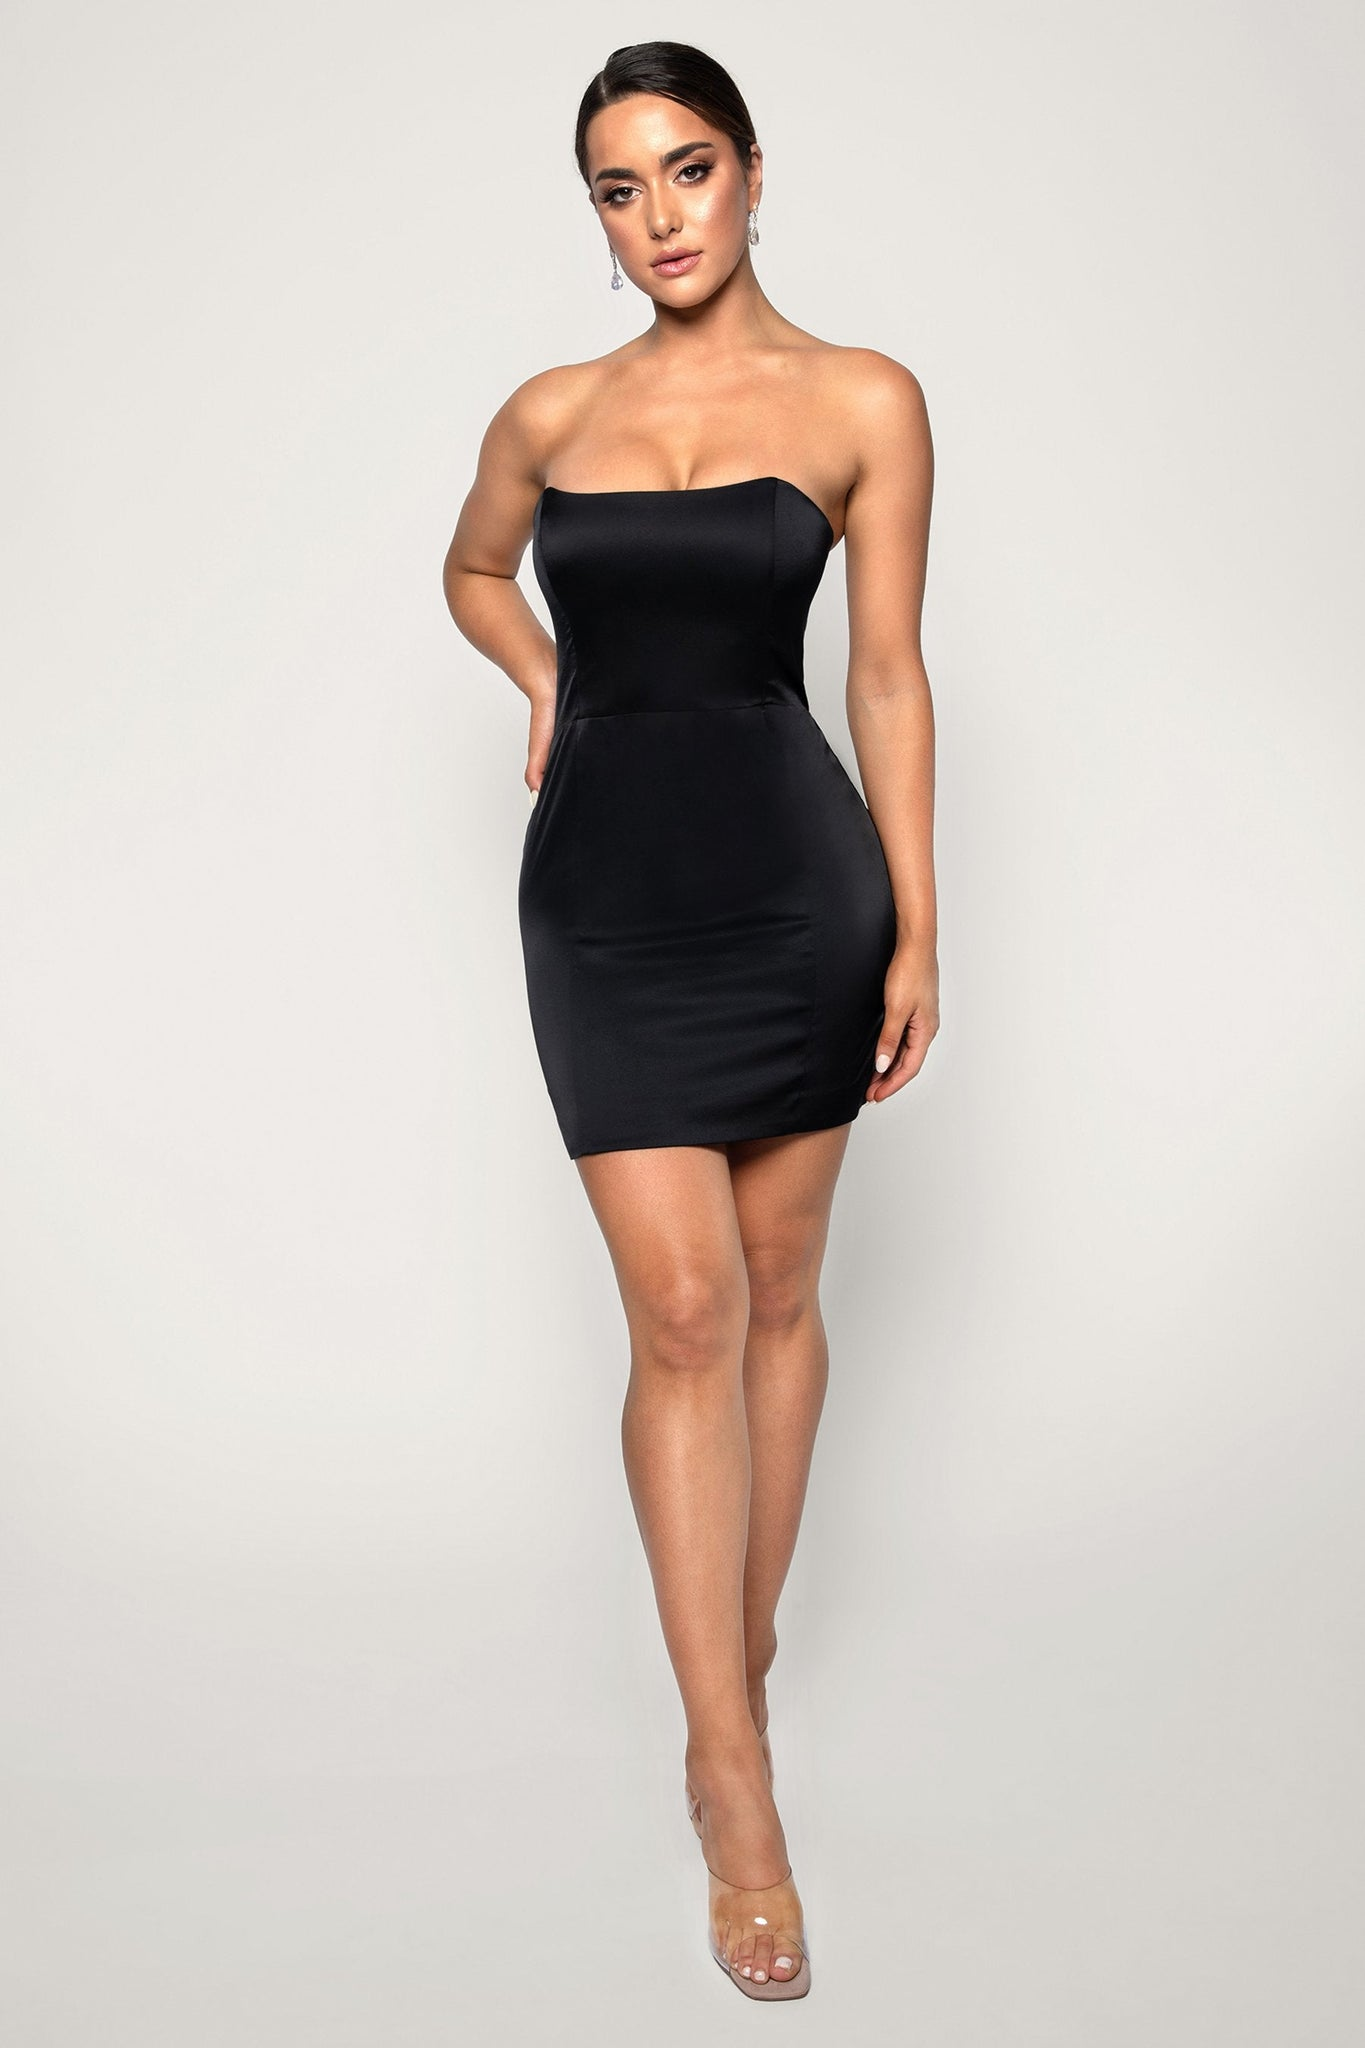 Kalita Strapless Satin Mini Dress - Black - MESHKI